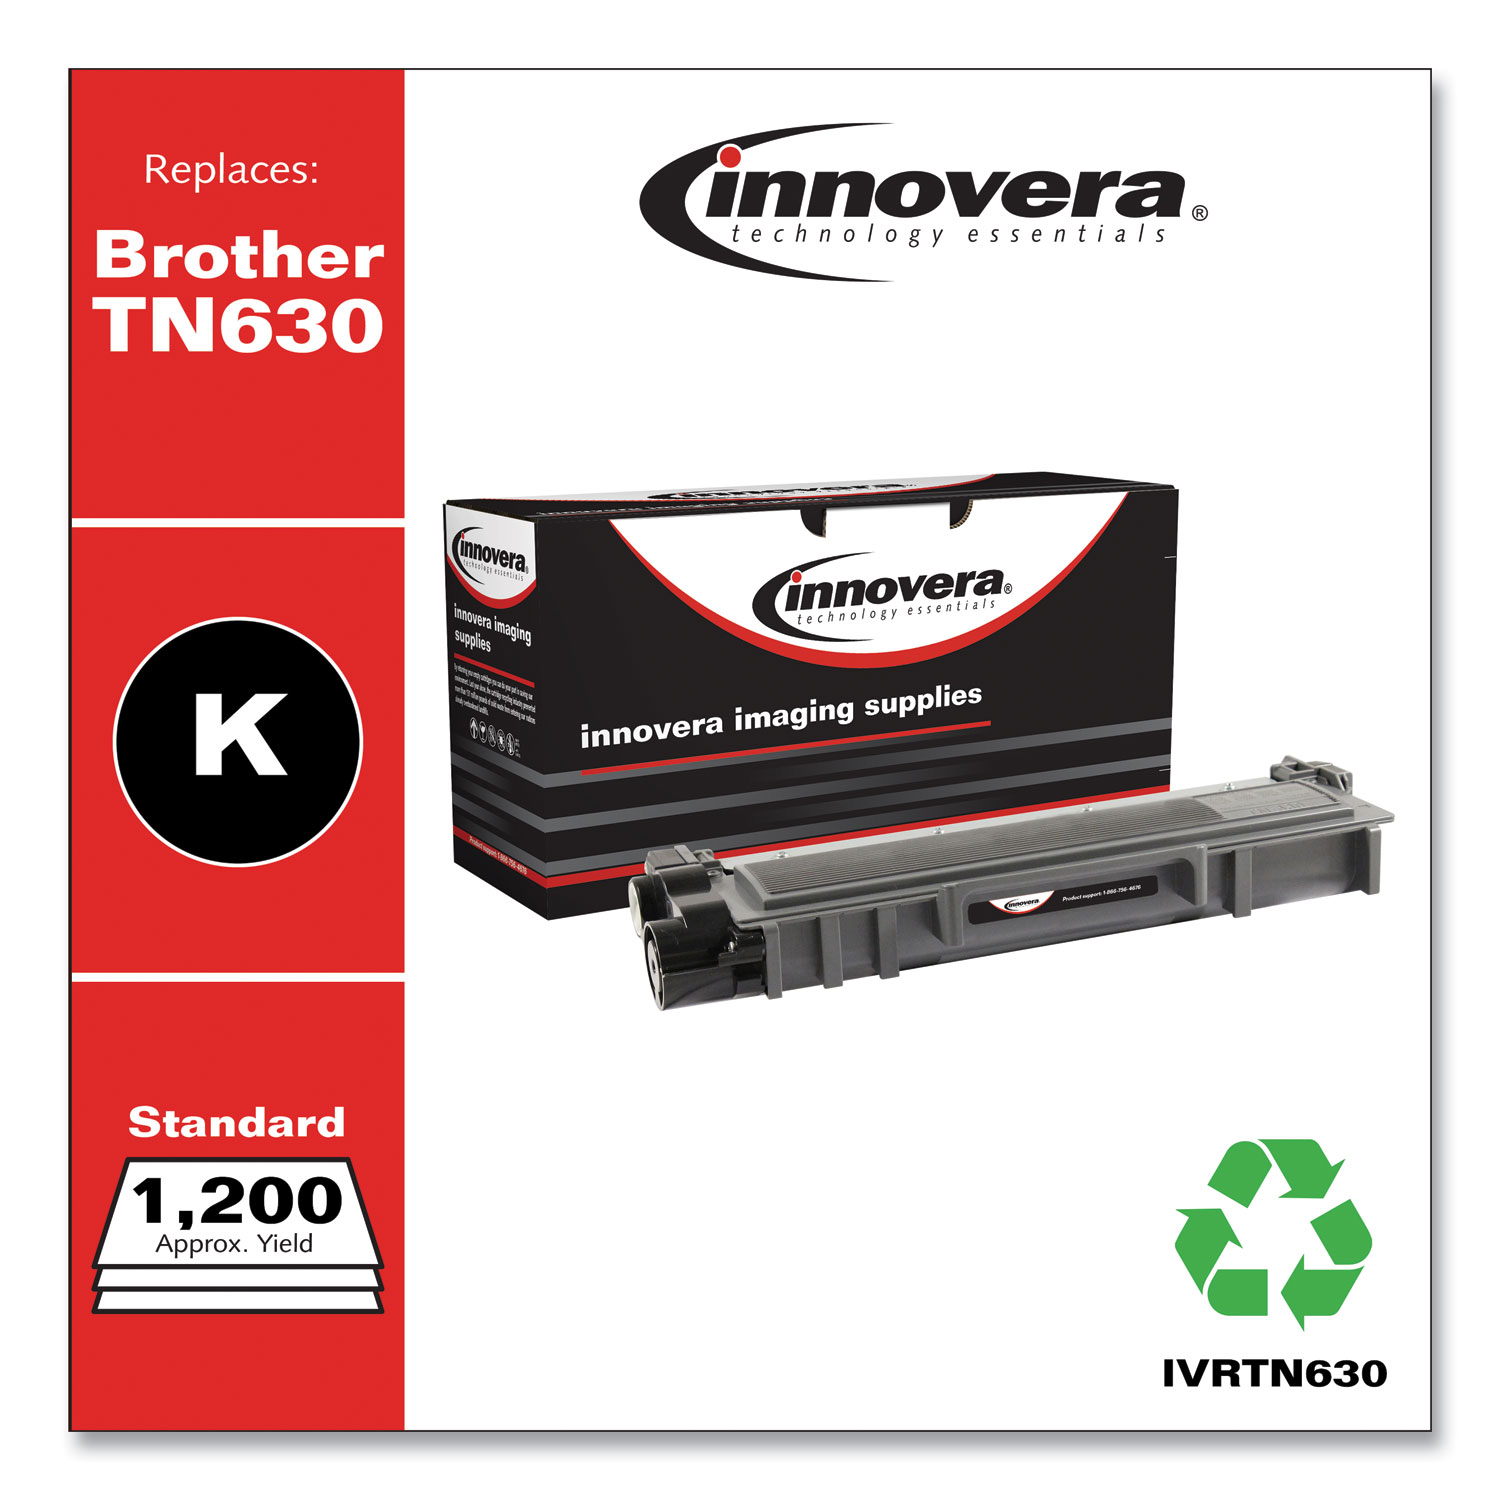 Remanufactured Black Toner Cartridge, Replacement for Brother TN630, 1,200 Page-Yield